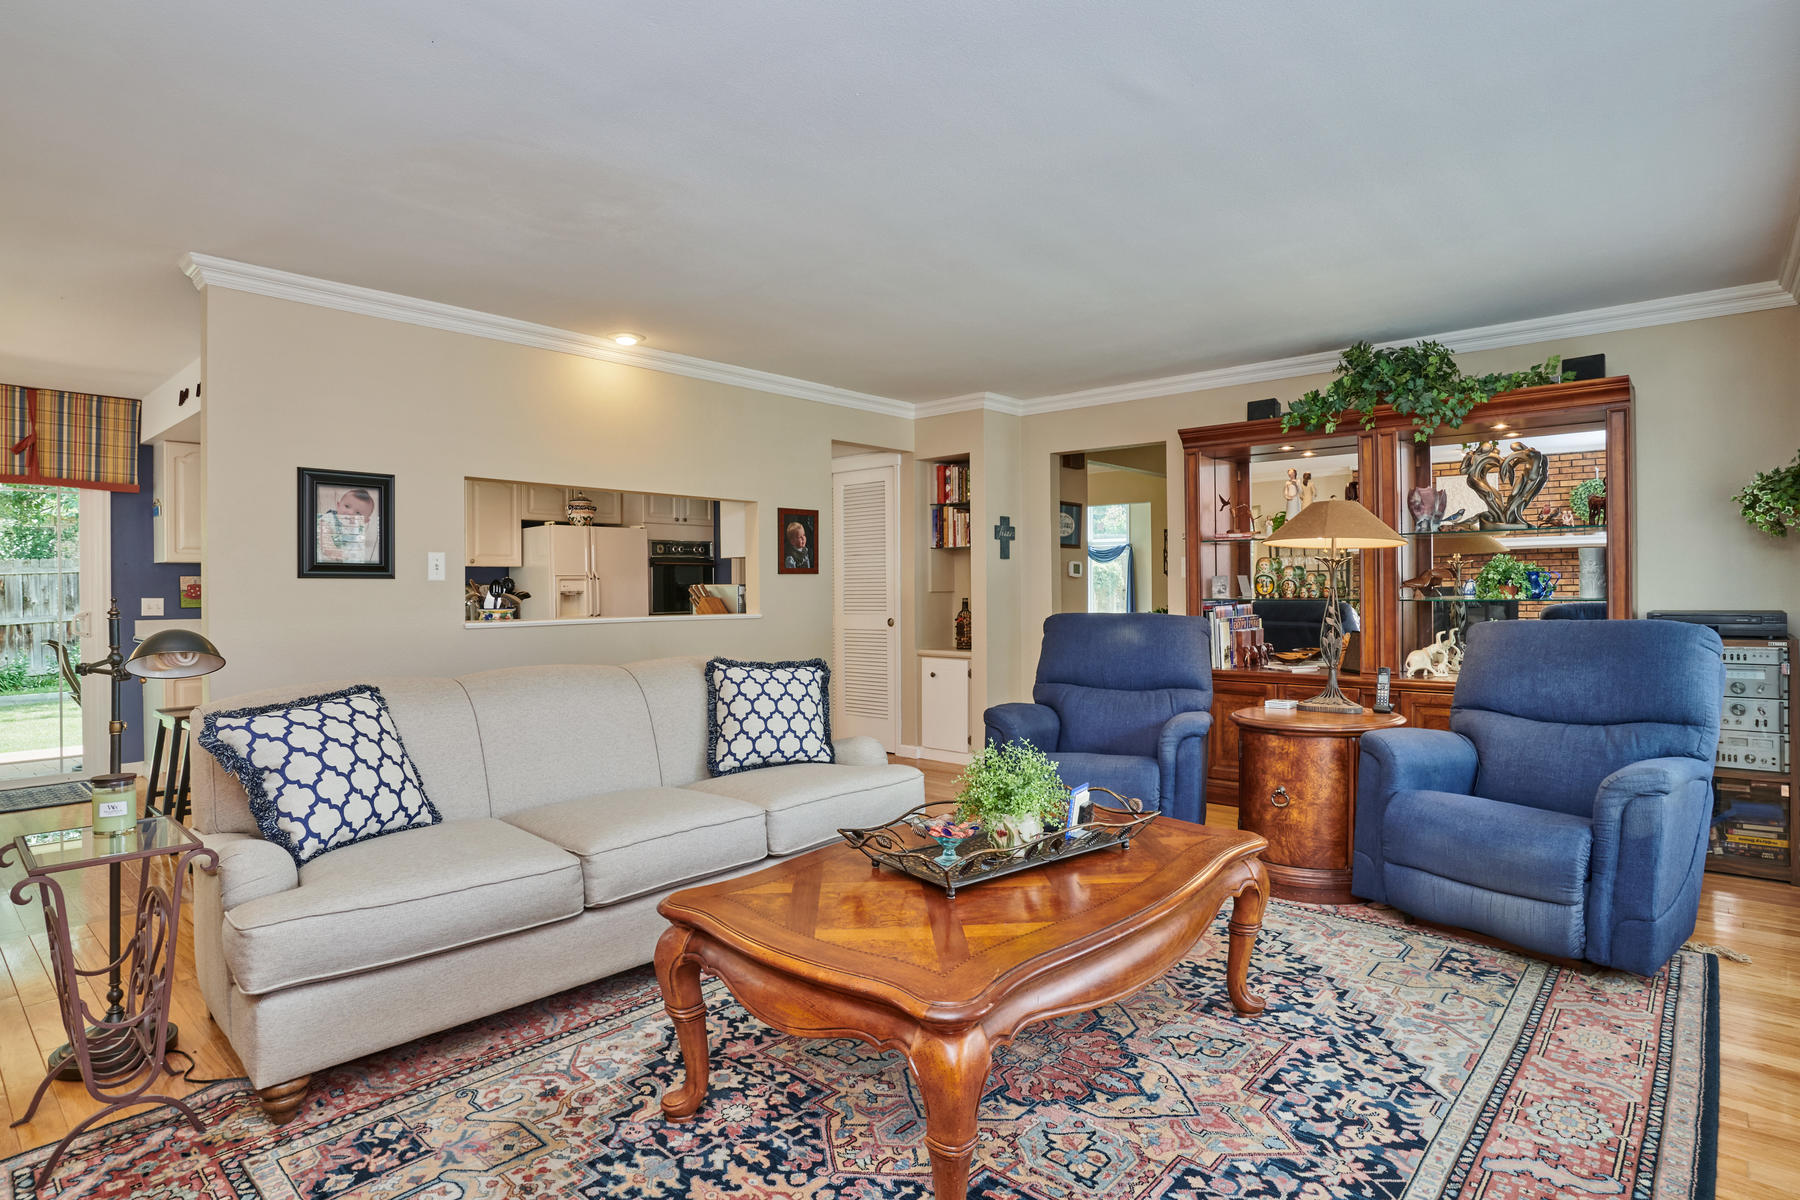 Family Room Has Pass Through Opening to Kitchen